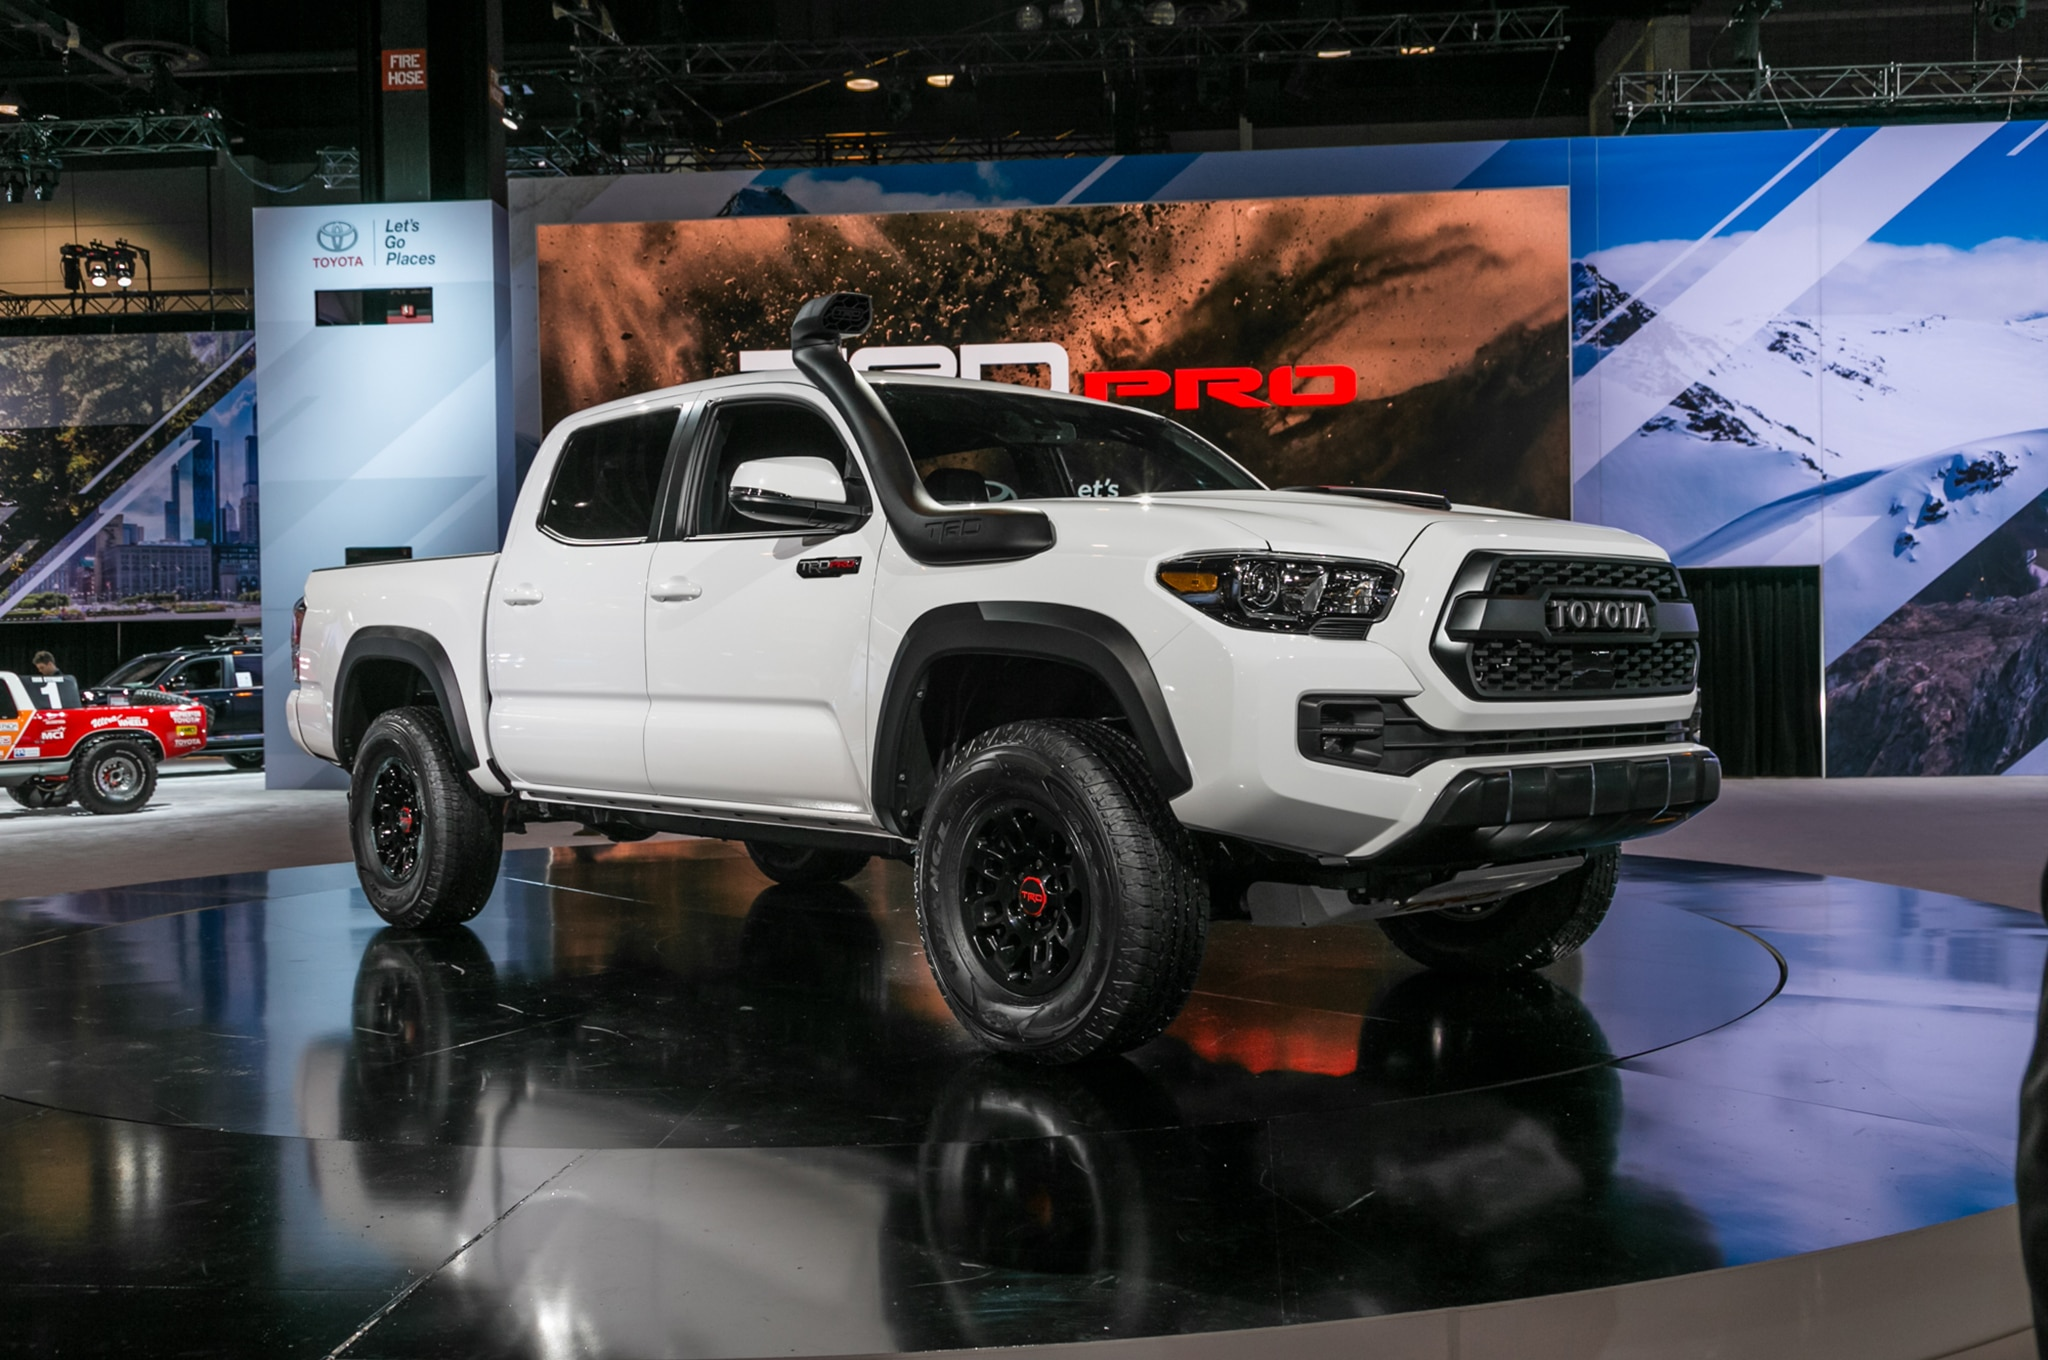 Toyota TRD Pro Off-Roaders Take the Stage in Chicago